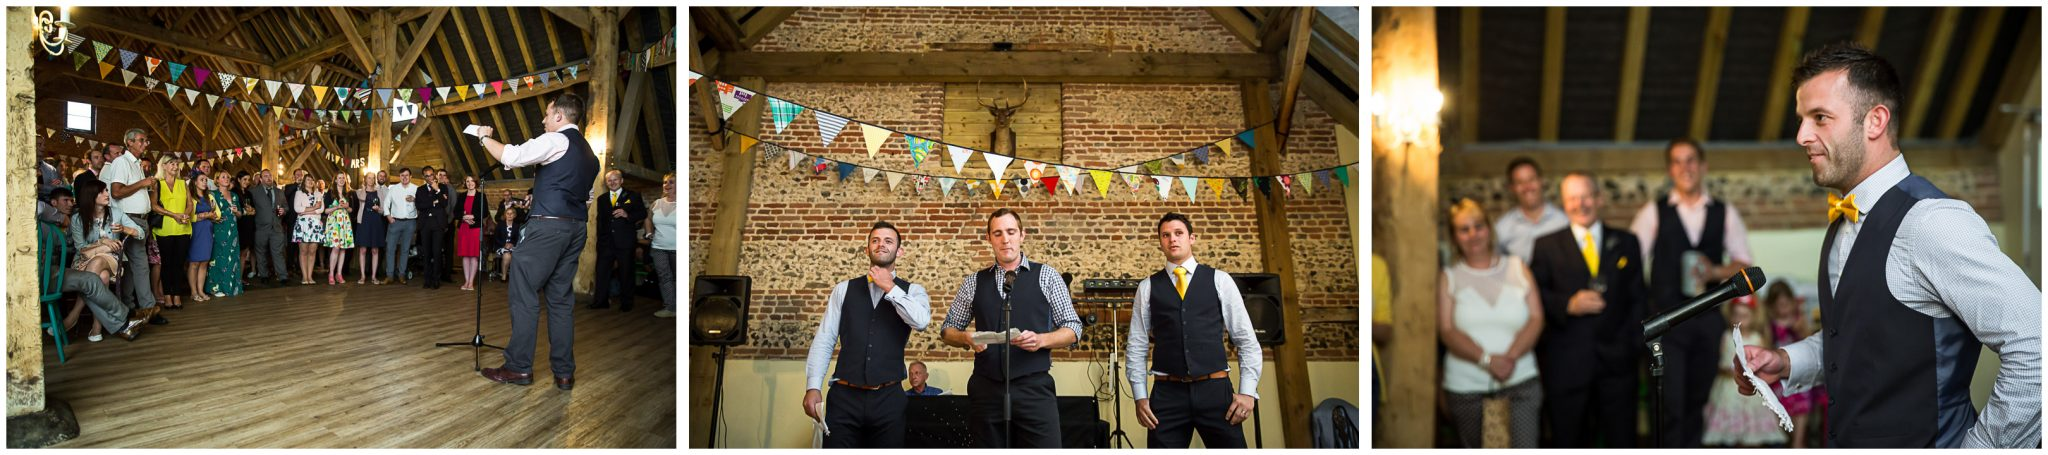 Winchester Great Hall wedding photography groomsmen speeches